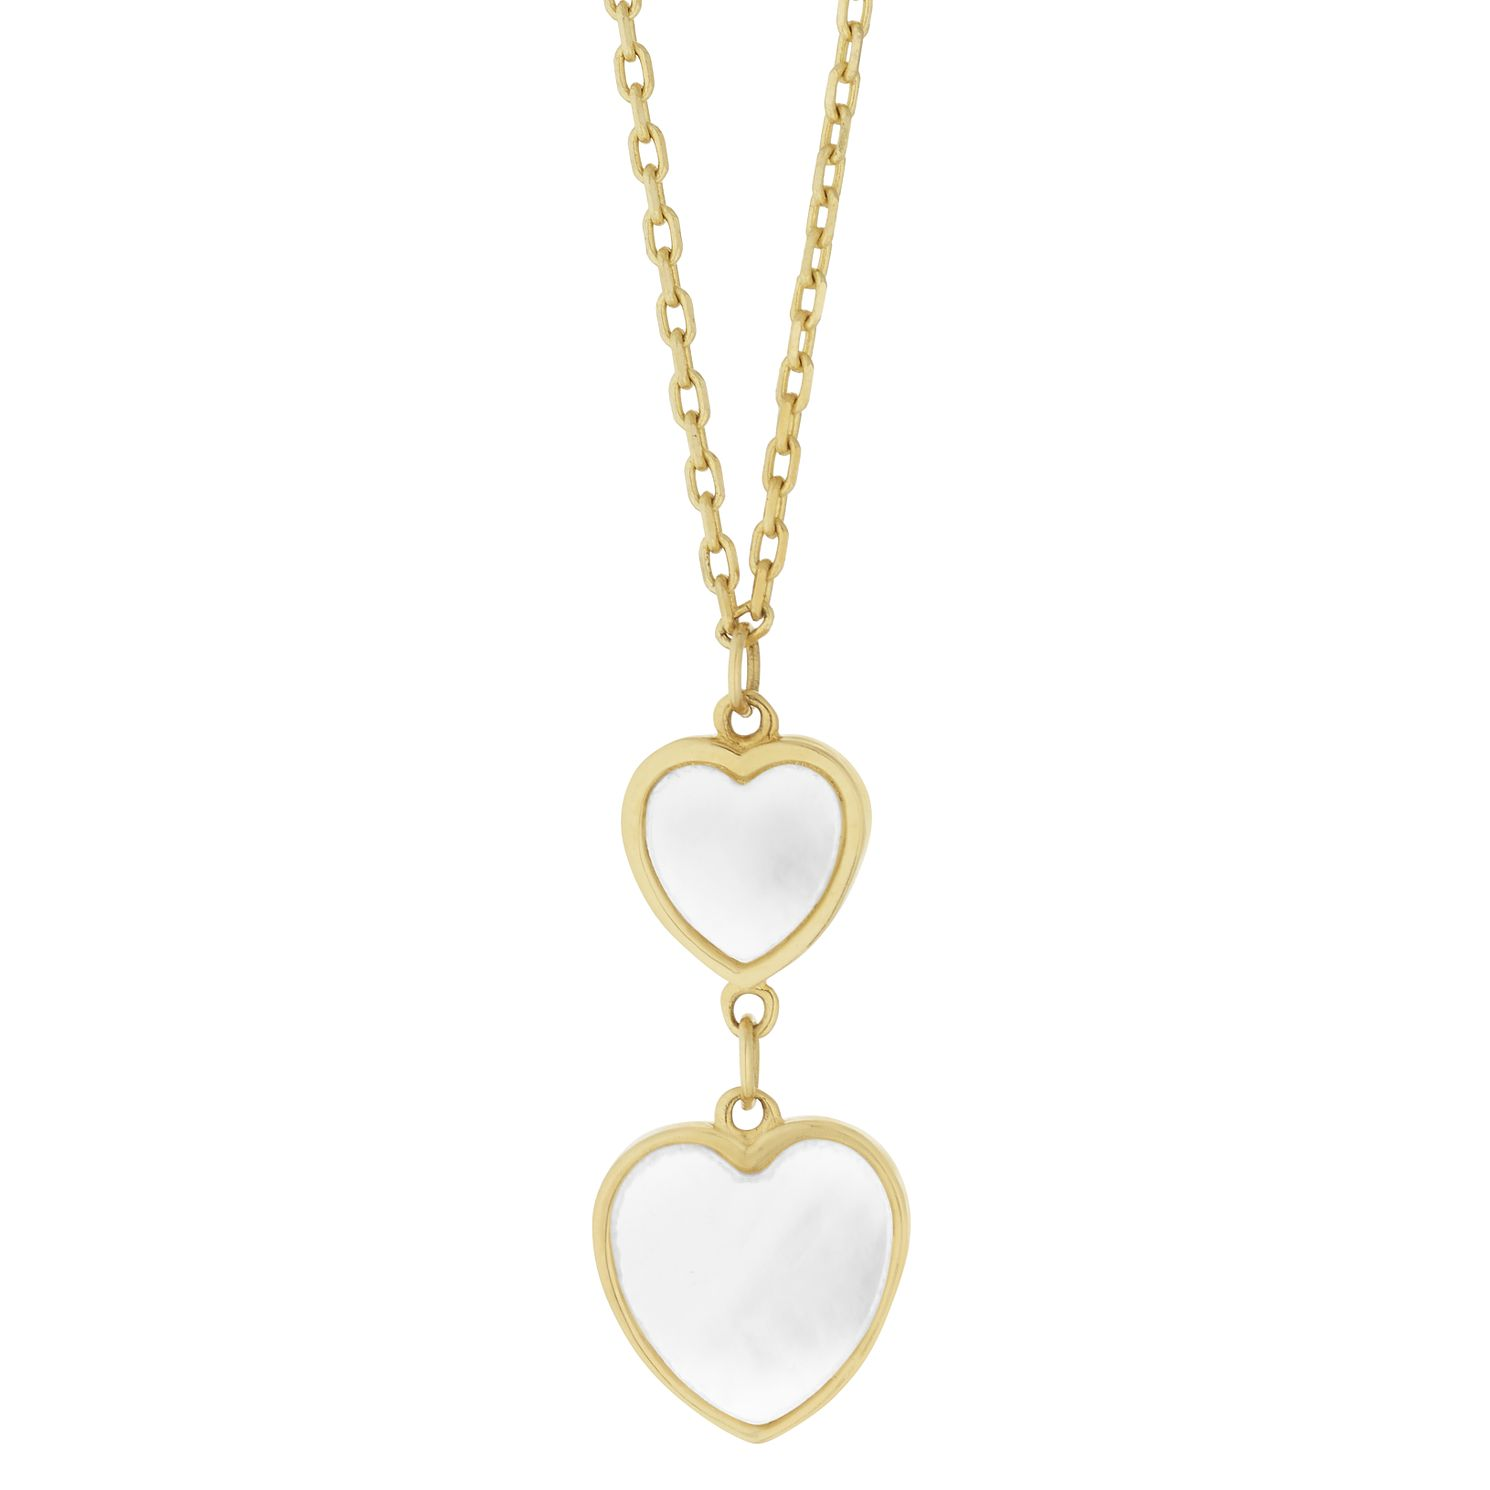 9ct Yellow Gold Mother of Pearl Heart Drop Necklace - Product number 9665684